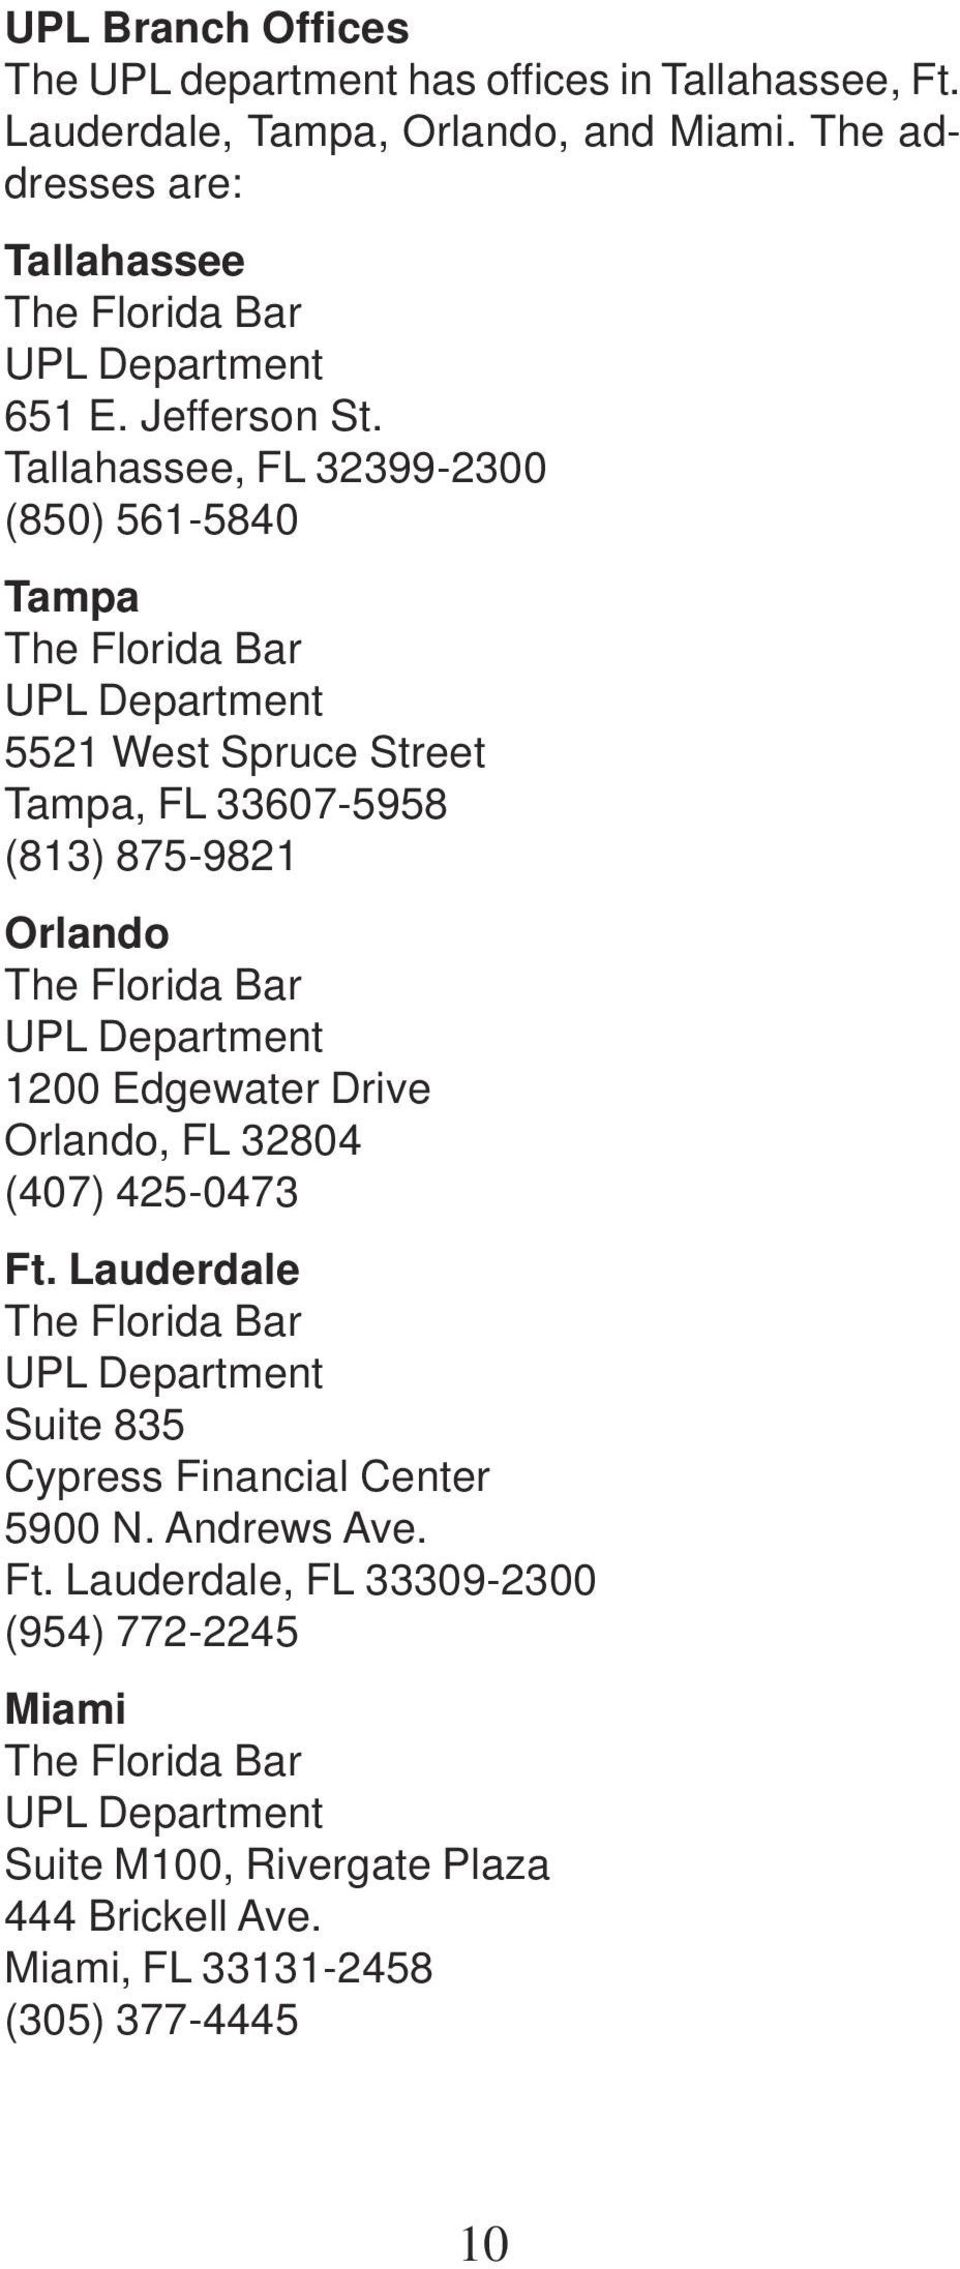 Tallahassee, FL 32399-2300 (850) 561-5840 Tampa The Florida Bar UPL Department 5521 West Spruce Street Tampa, FL 33607-5958 (813) 875-9821 Orlando The Florida Bar UPL